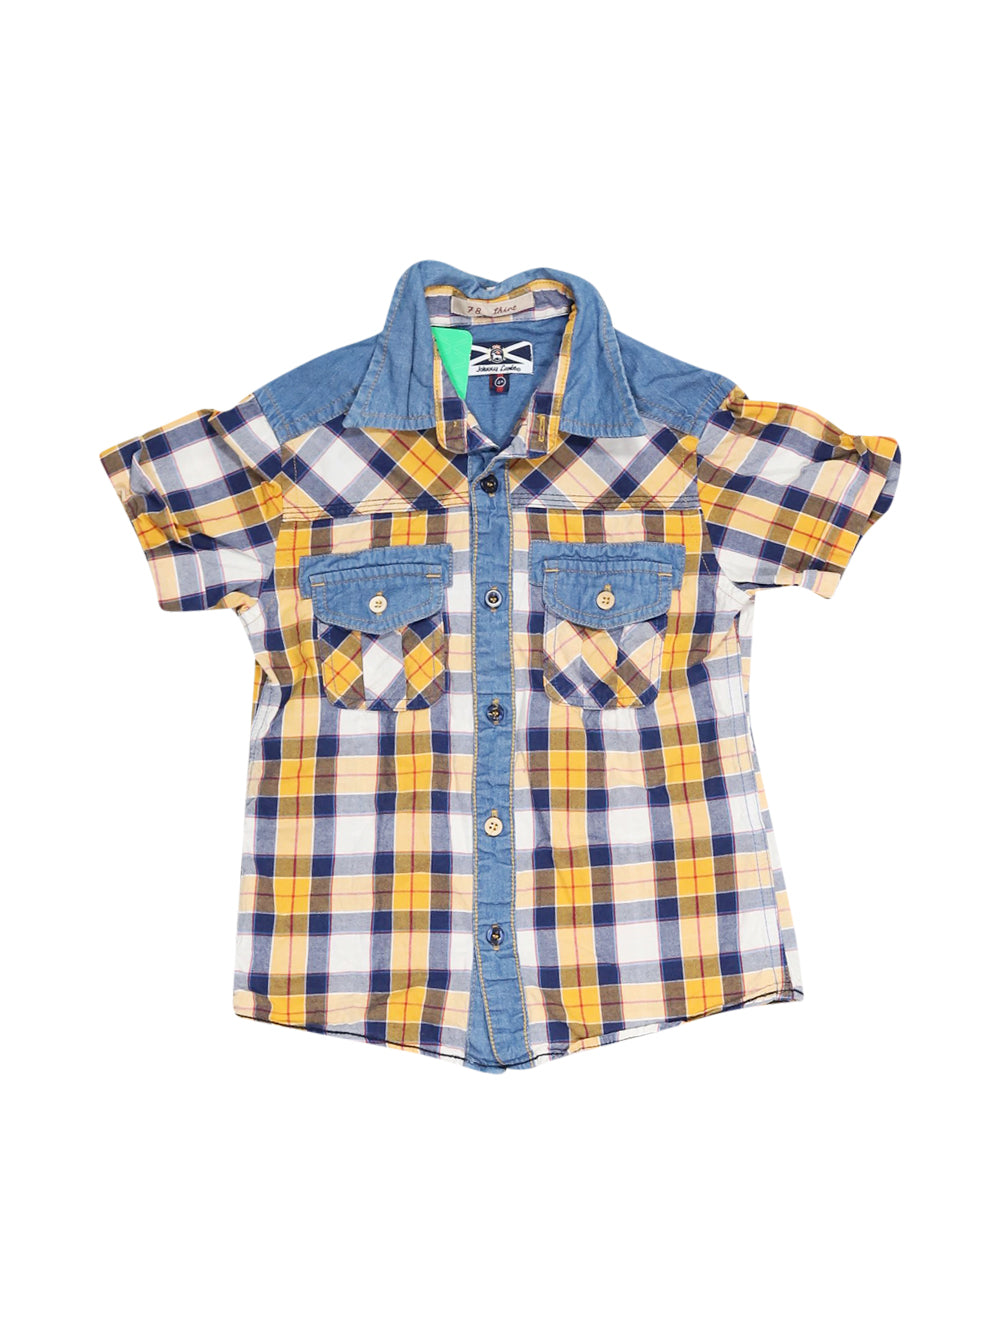 Front photo of Preloved Johnny Lambs Blue Boy's shirt - size 3-4 yrs